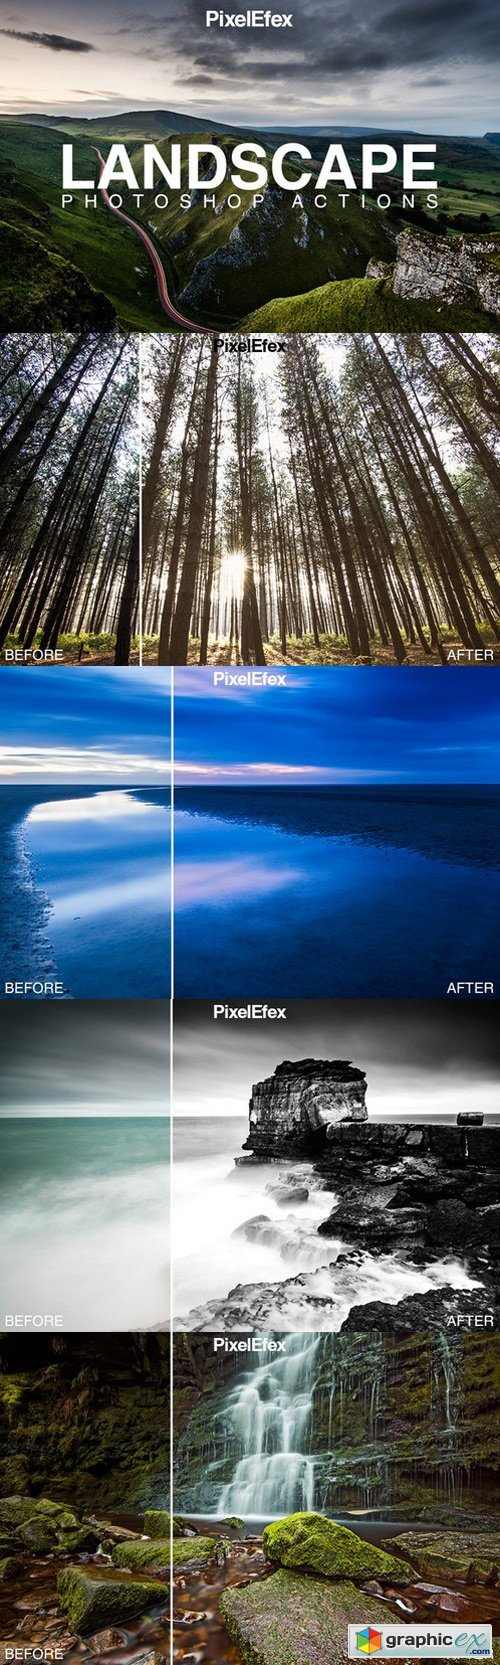 Landscape Photoshop Actions 537018